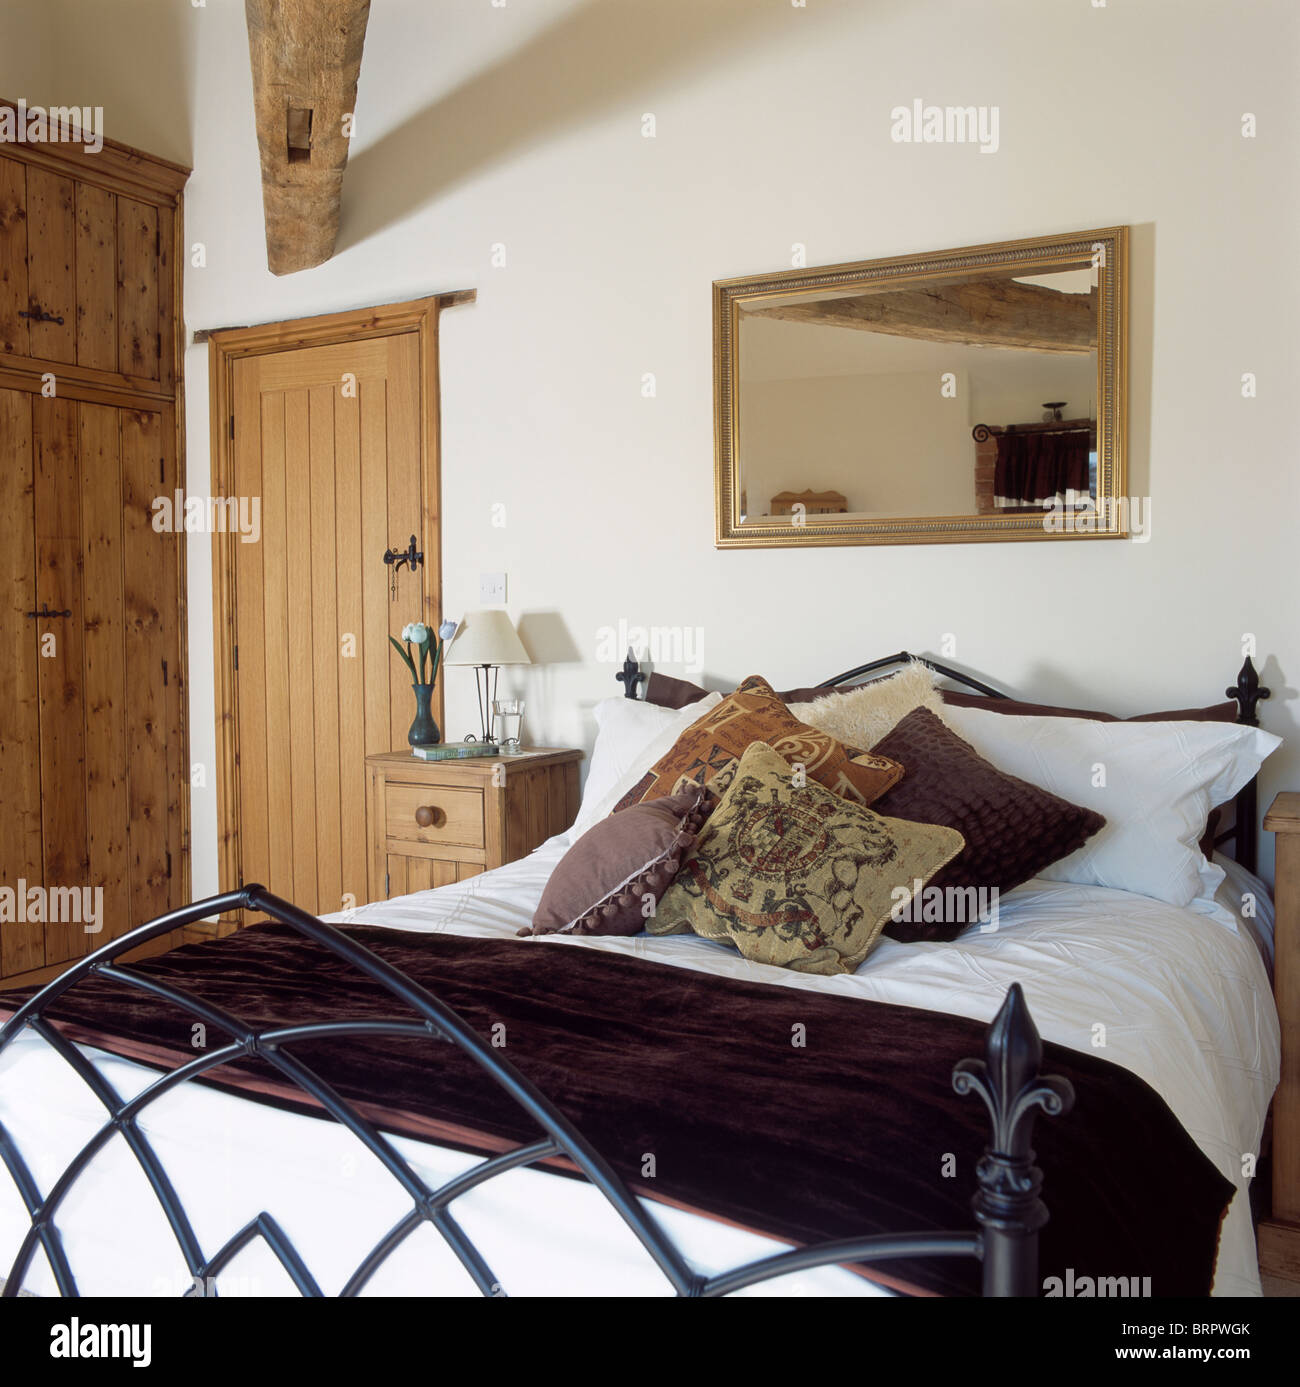 Mirror Ceiling Bedroom Country Bedroom With Mirror On Wall Above Gothic Style Bed With